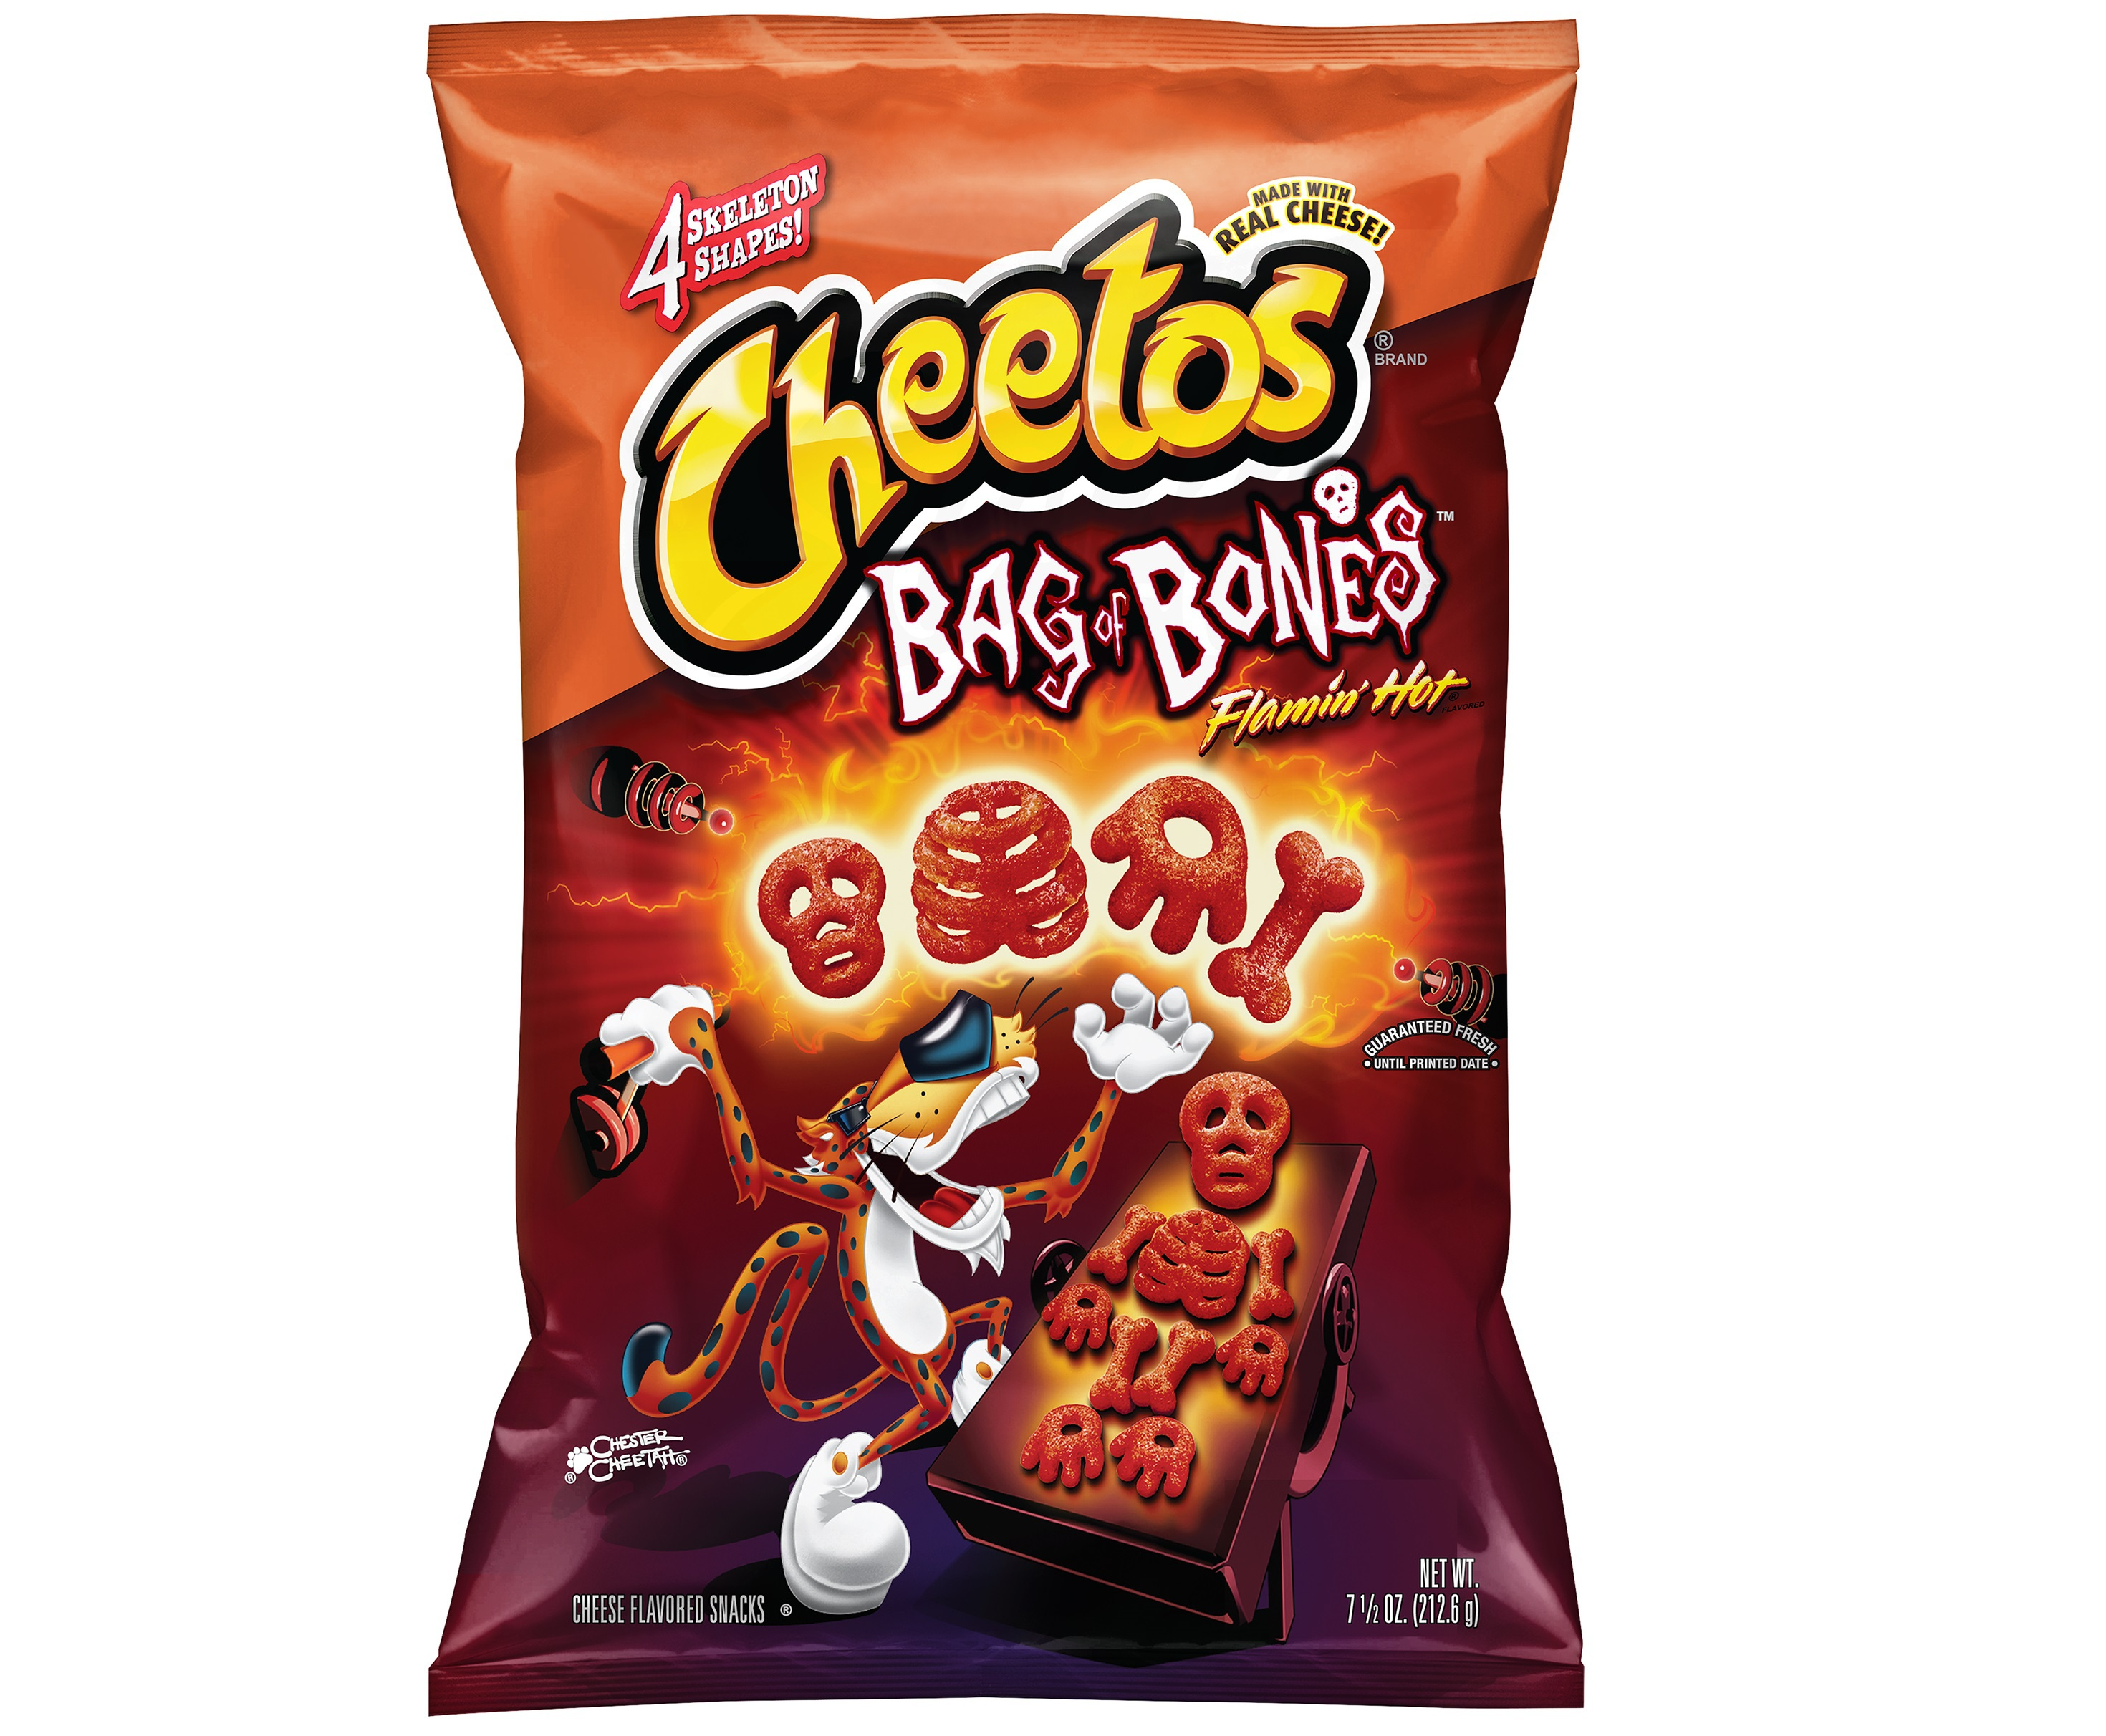 Cheetos High Definition Wallpapers